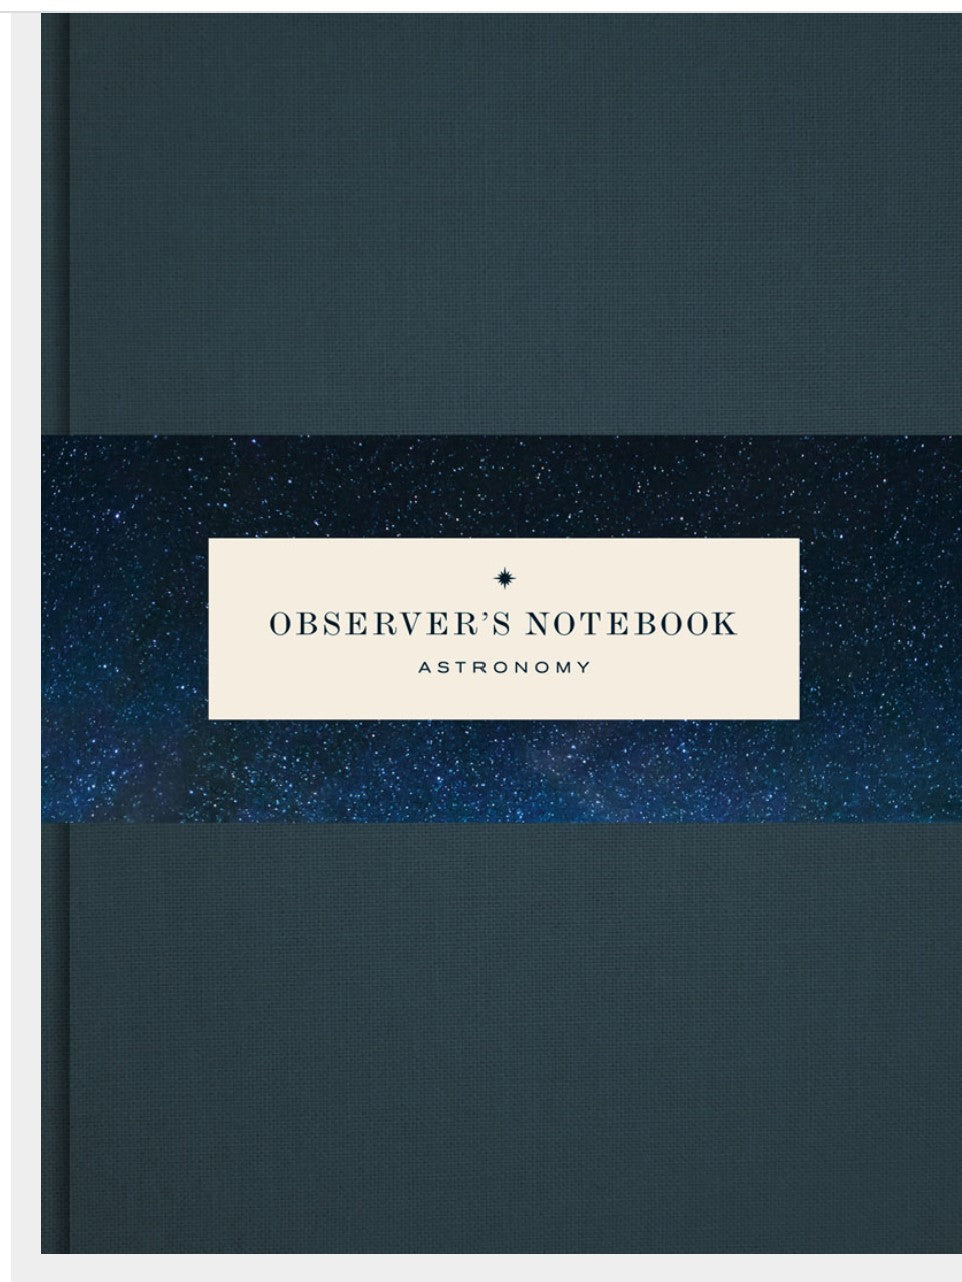 Observer's Notebook (Astronomy)